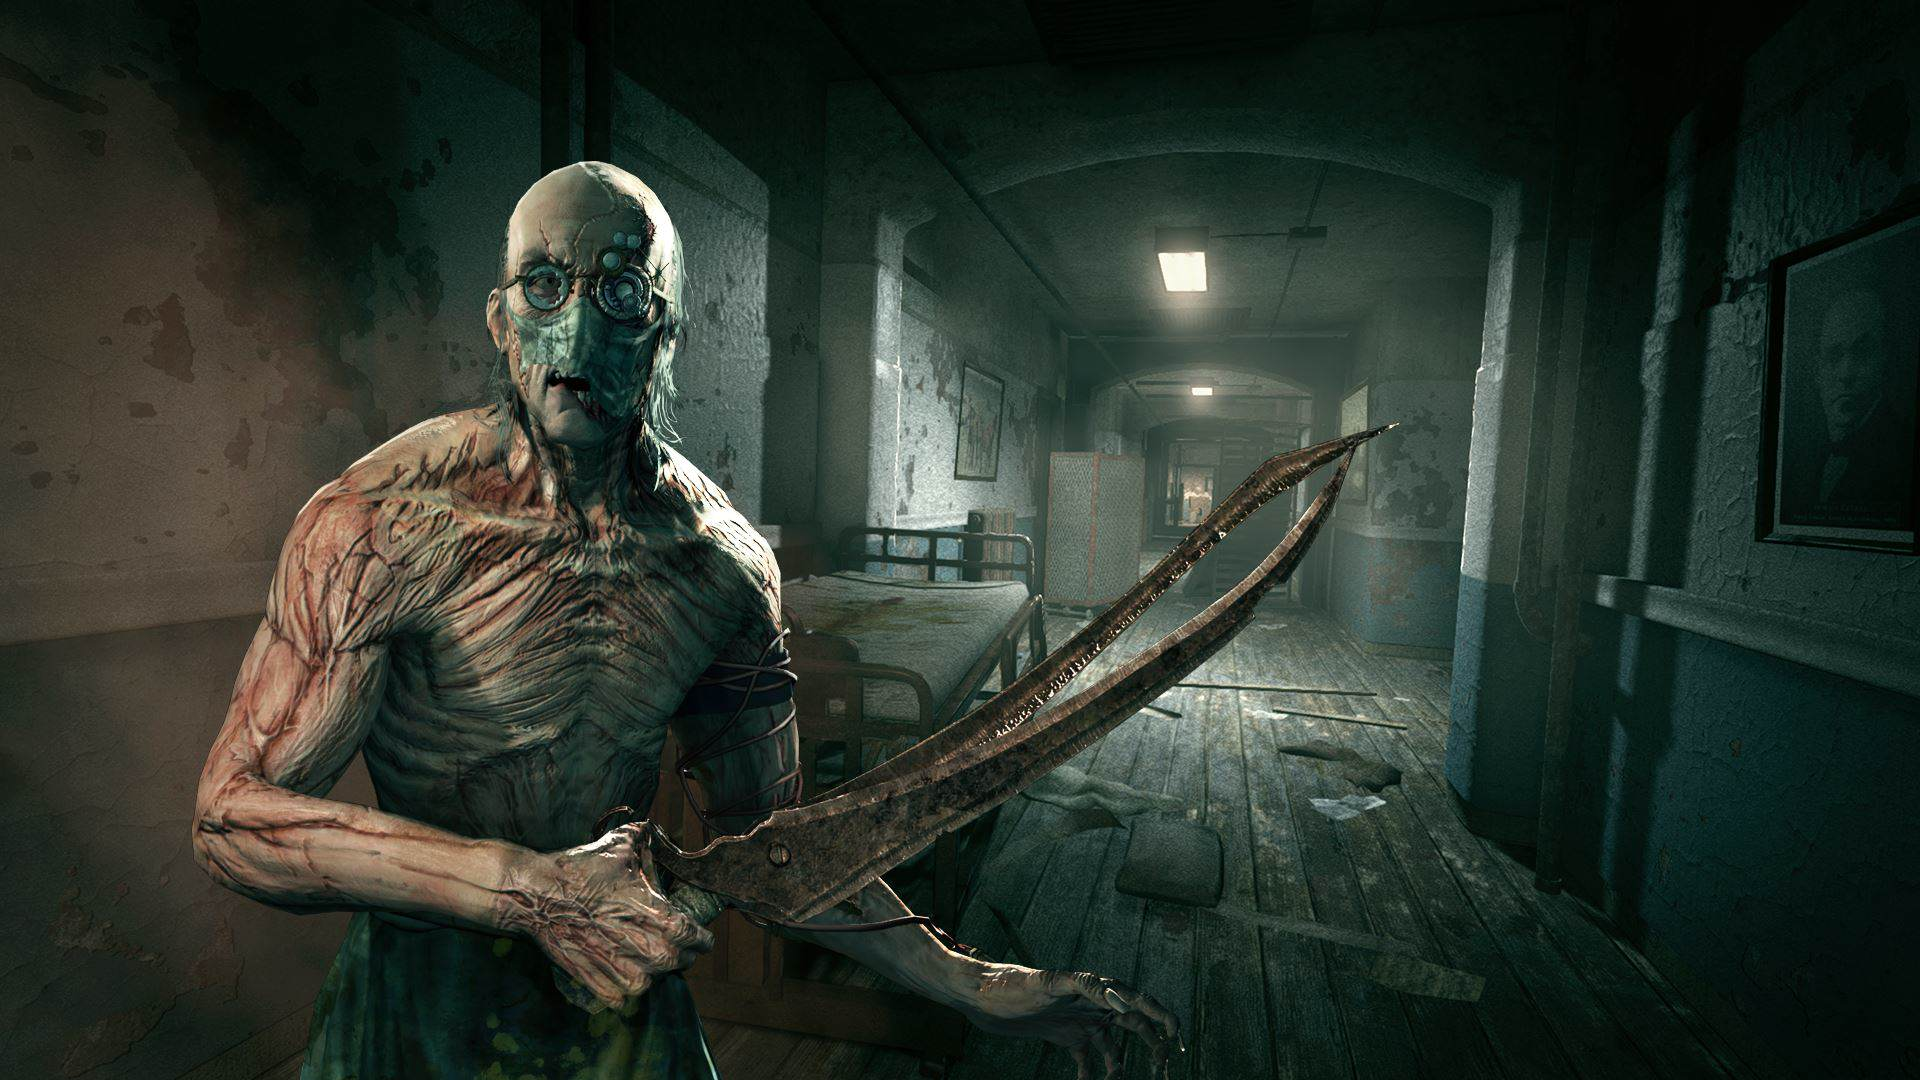 image 1 New Outlast 2 Trailer Releases, Is Spectacularly Unnerving